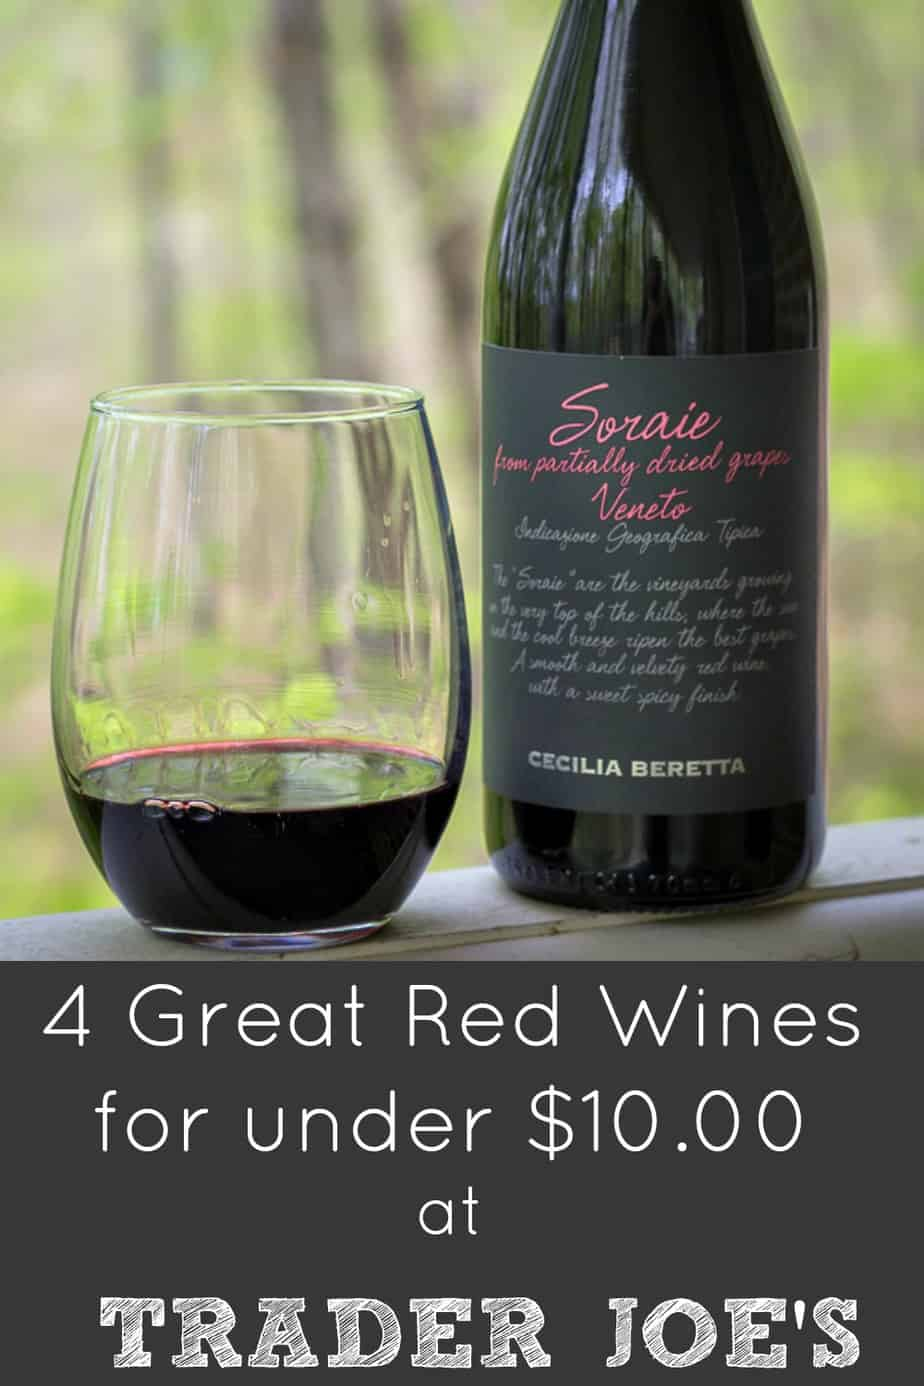 Four Good Affordable Red Wines at Trader Joe's